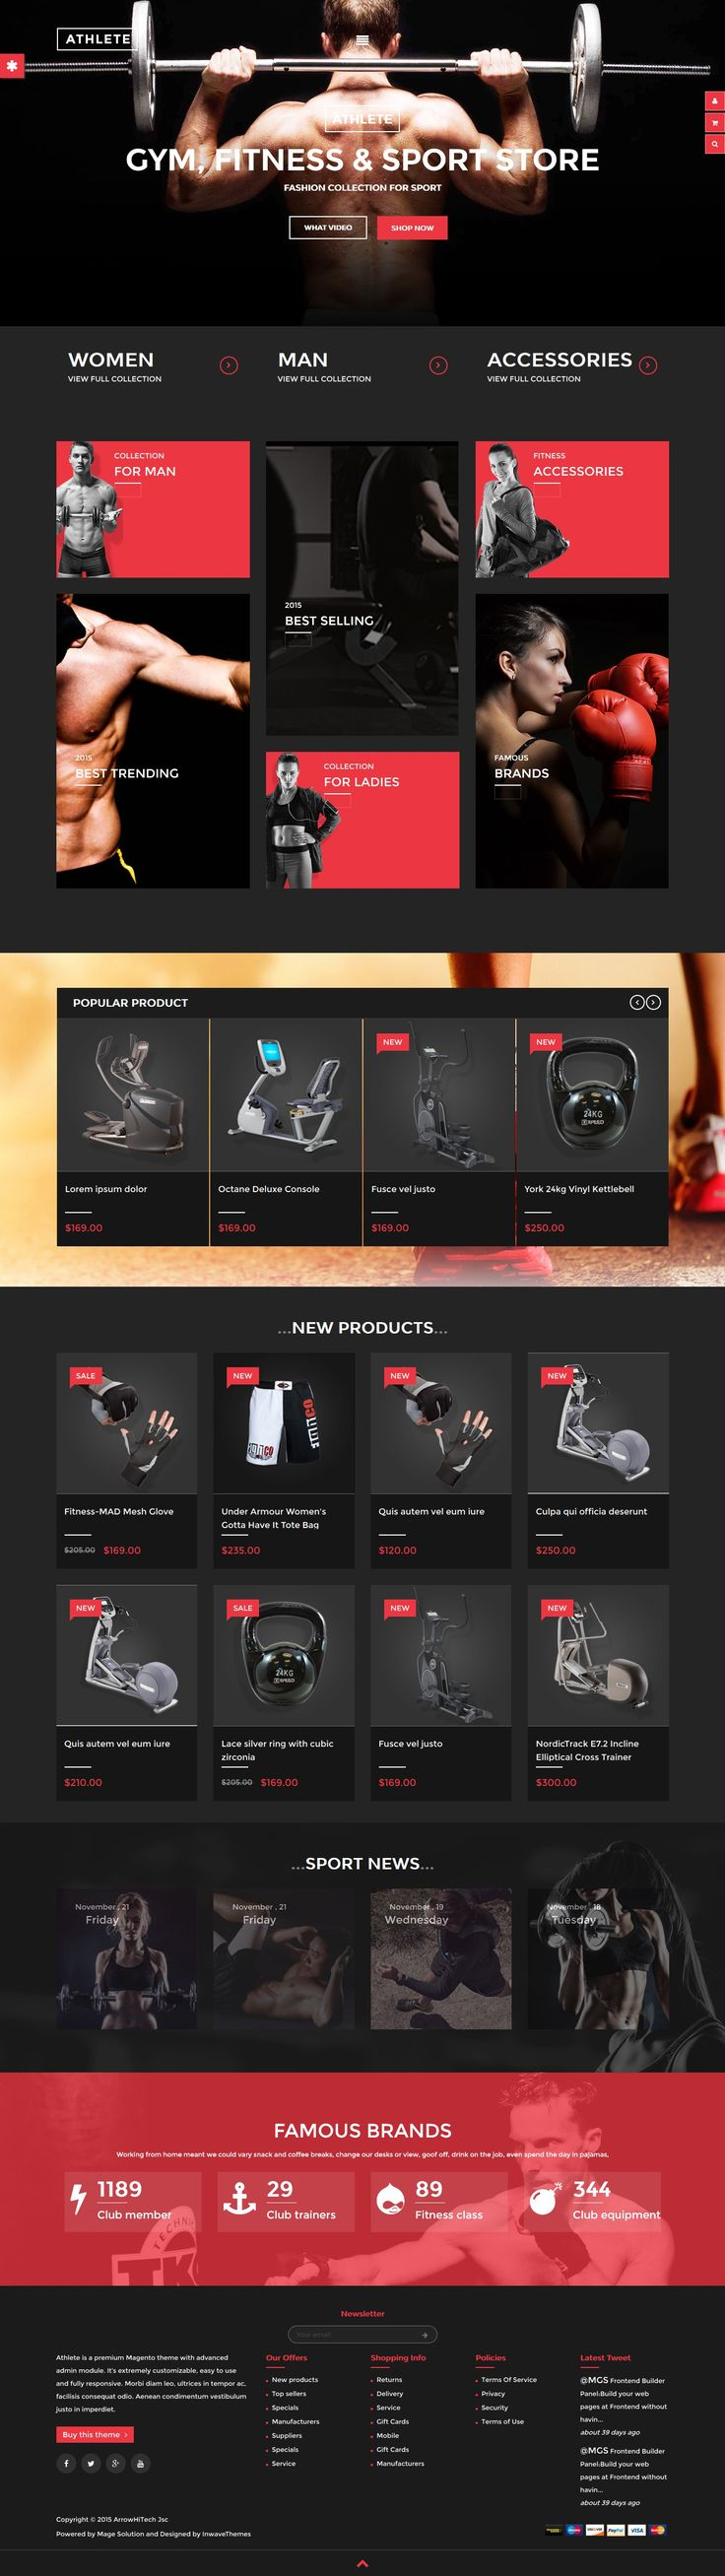 33 New Awesomely #Design Premium Themes of 24 March 2015 #website #inspiration